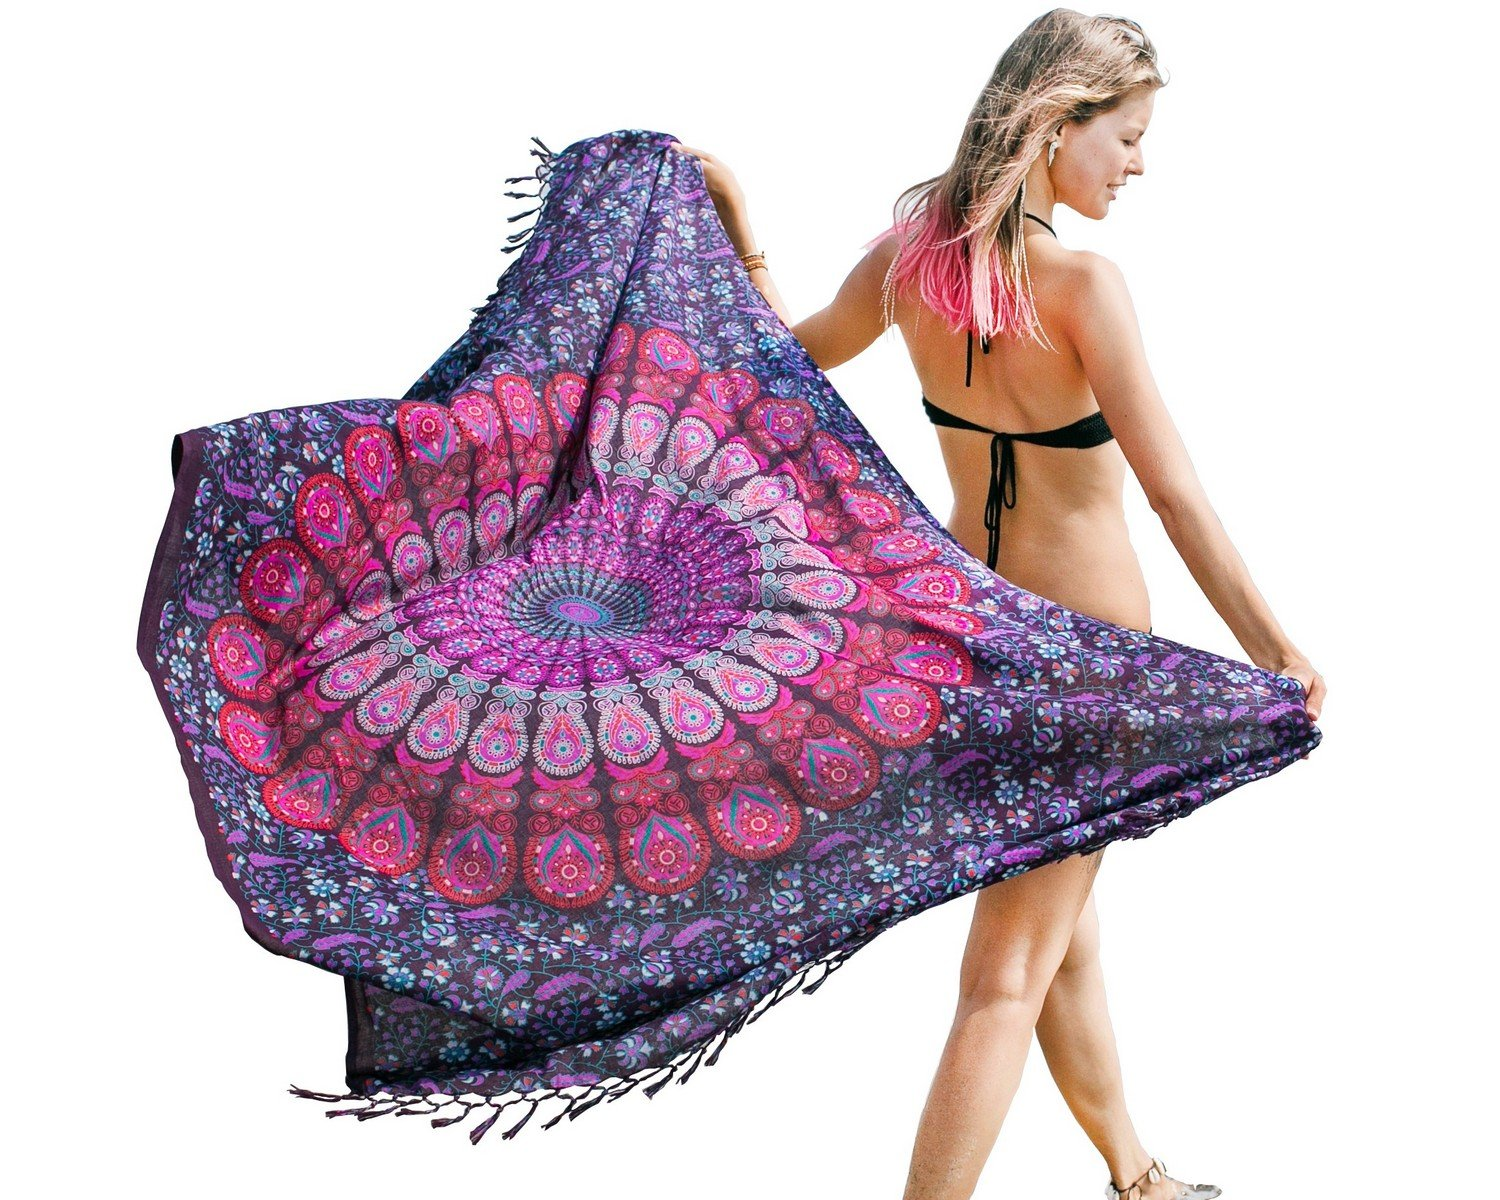 Pareo - Mandala Sarong - Bikini Swimsuit Cover Up- Beach blanket - Wrap - Dress Mandala Life ART ParepPBlue